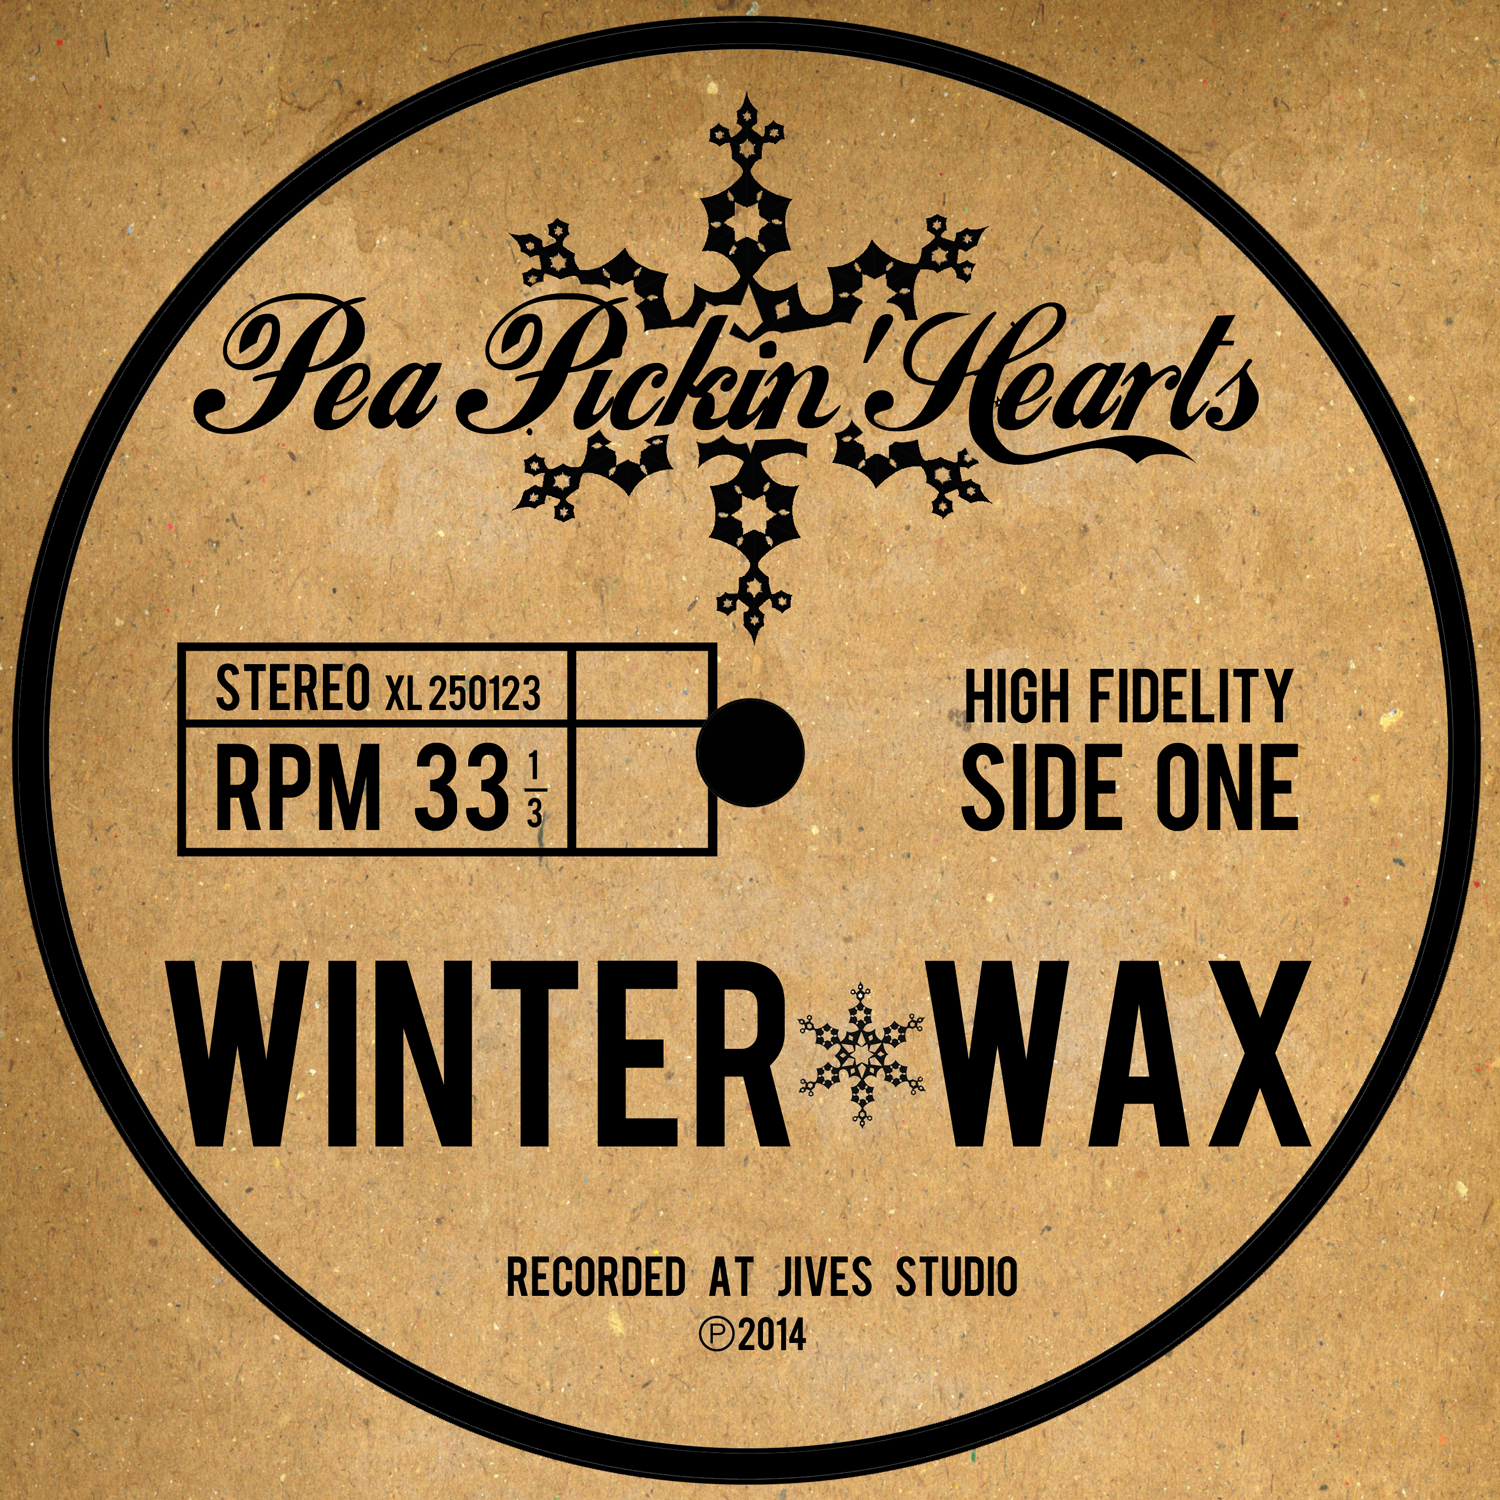 Winter Wax CD from the Pea Pickin' Hearts!